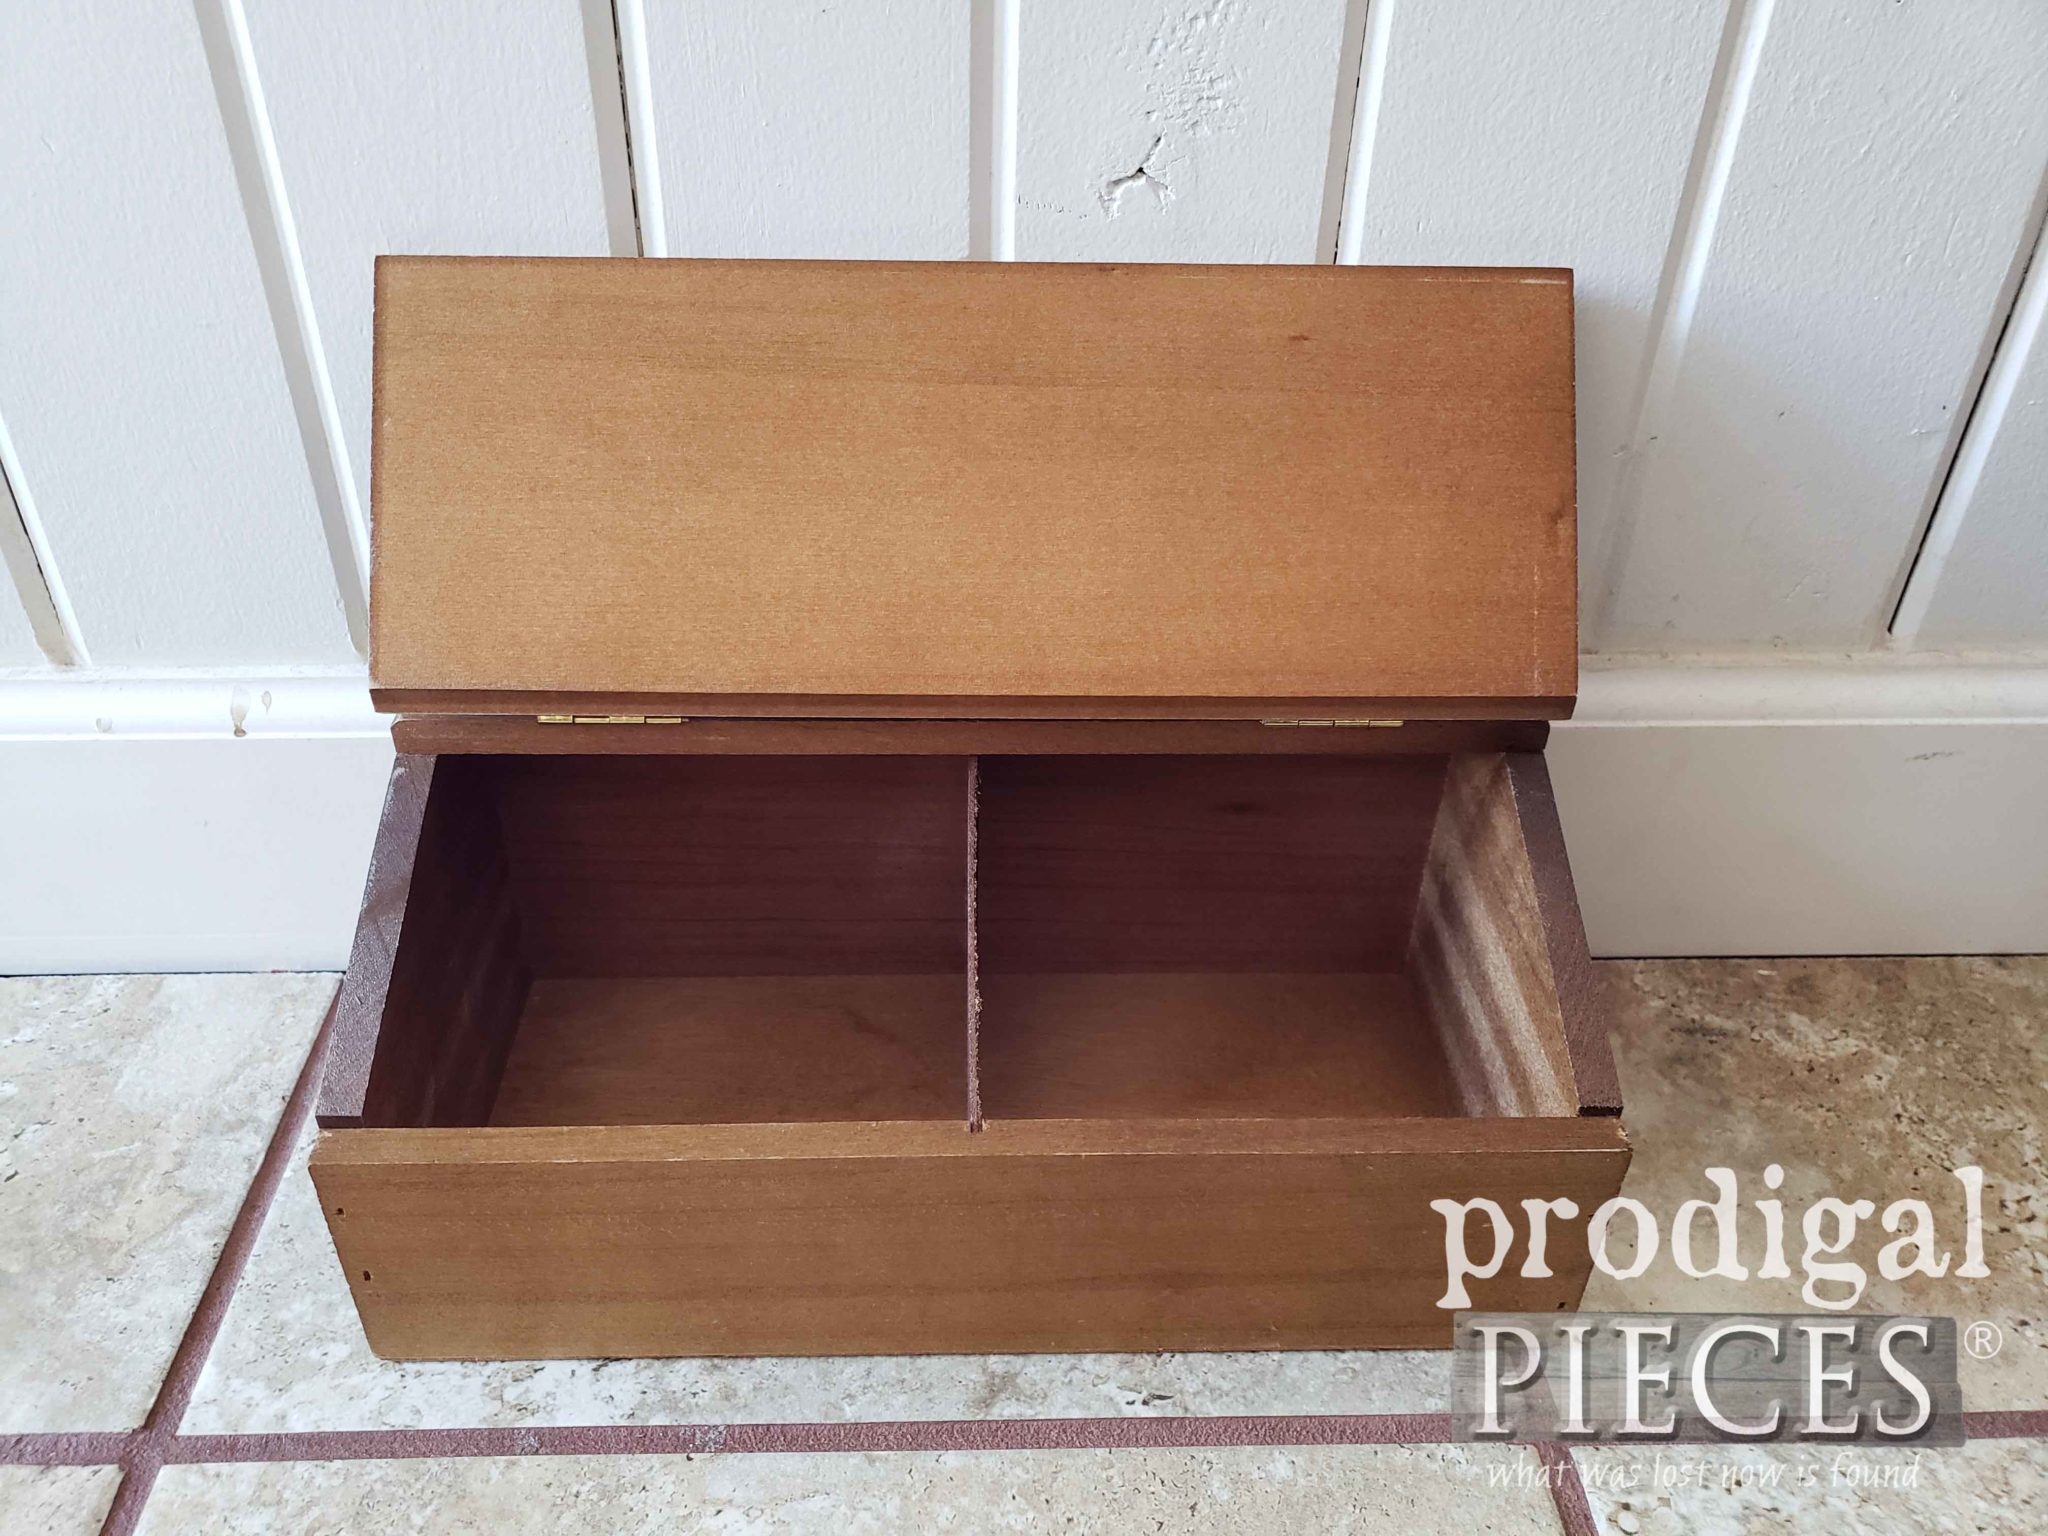 Inside Vintage Wooden Recipe Box | prodigalpieces.com